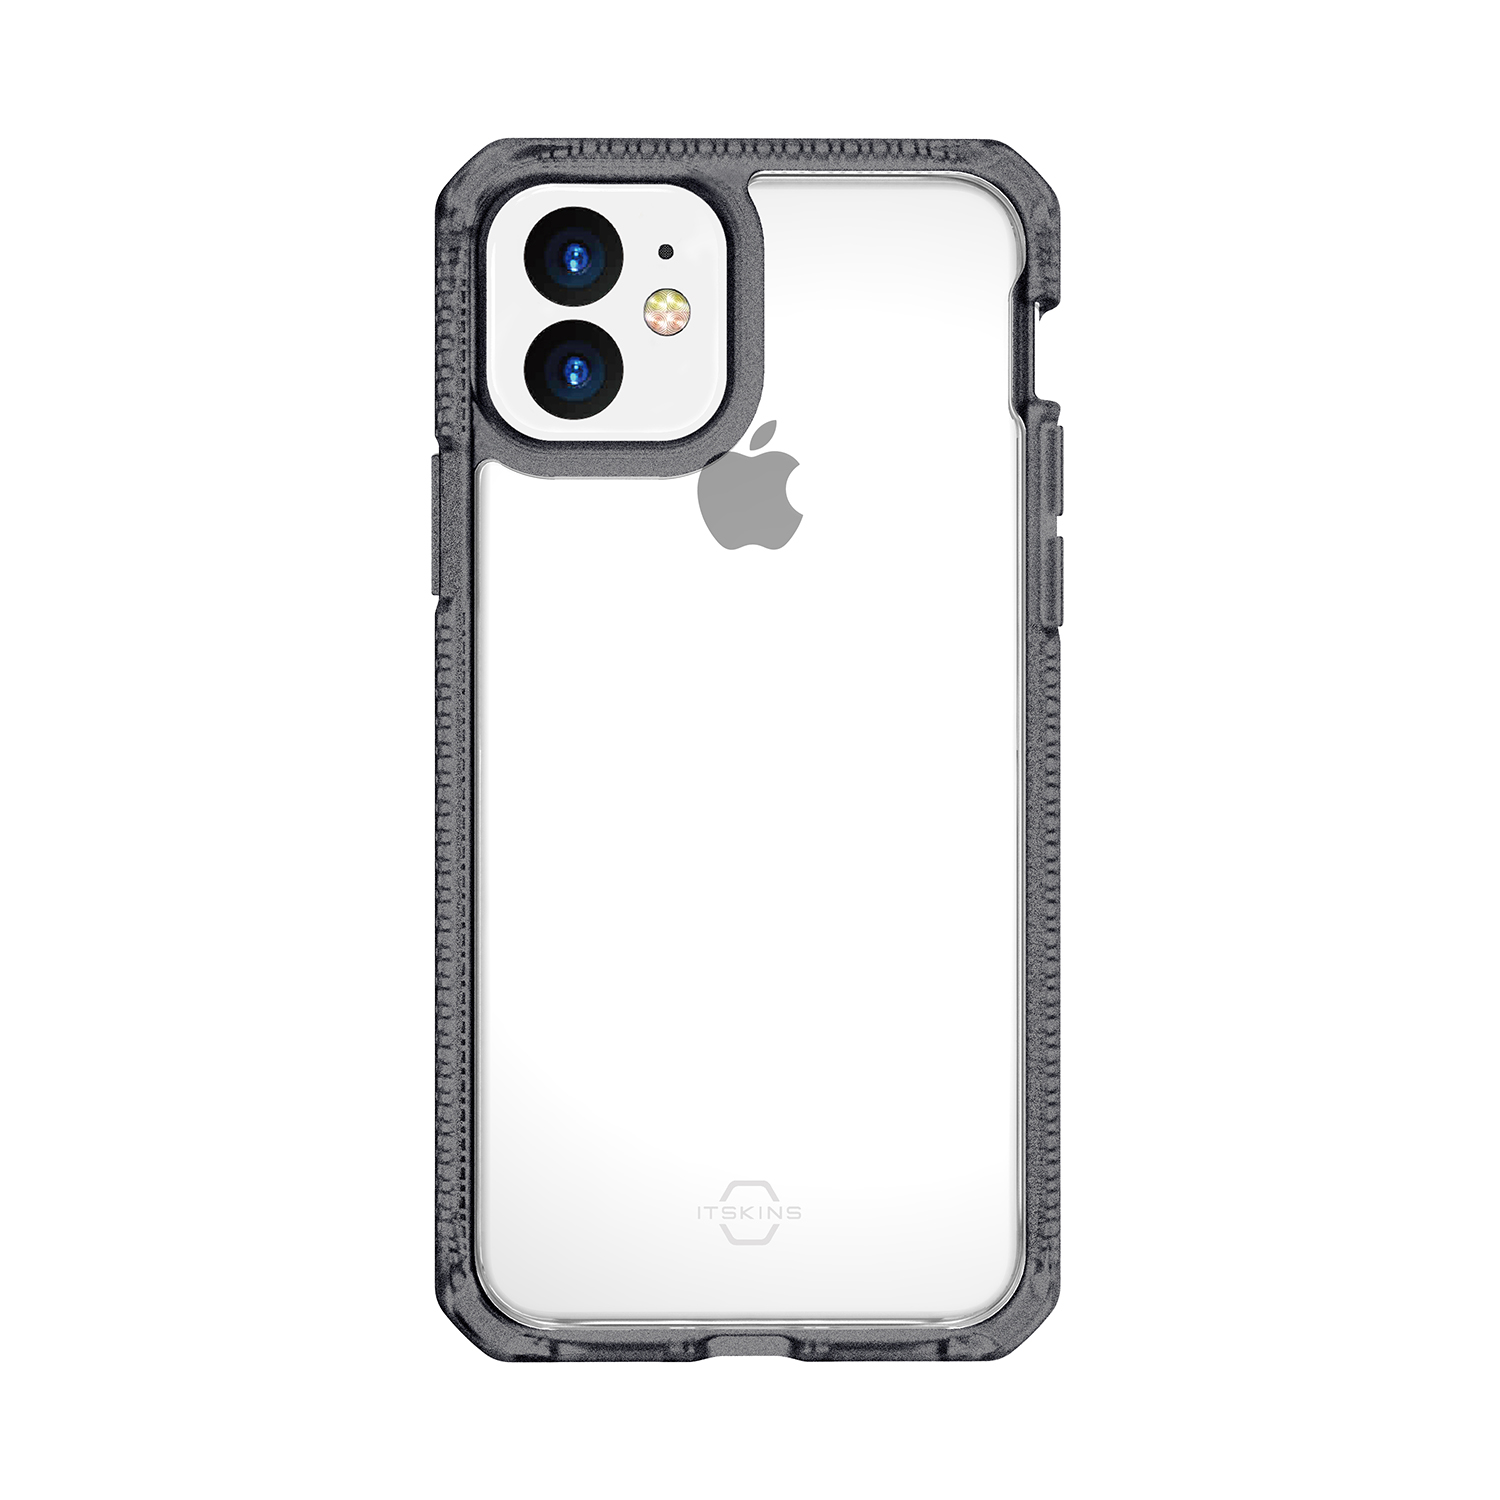 ITSKINS Hybrid Frost Case for iPhone 11, 11 Pro & 11 Pro Max